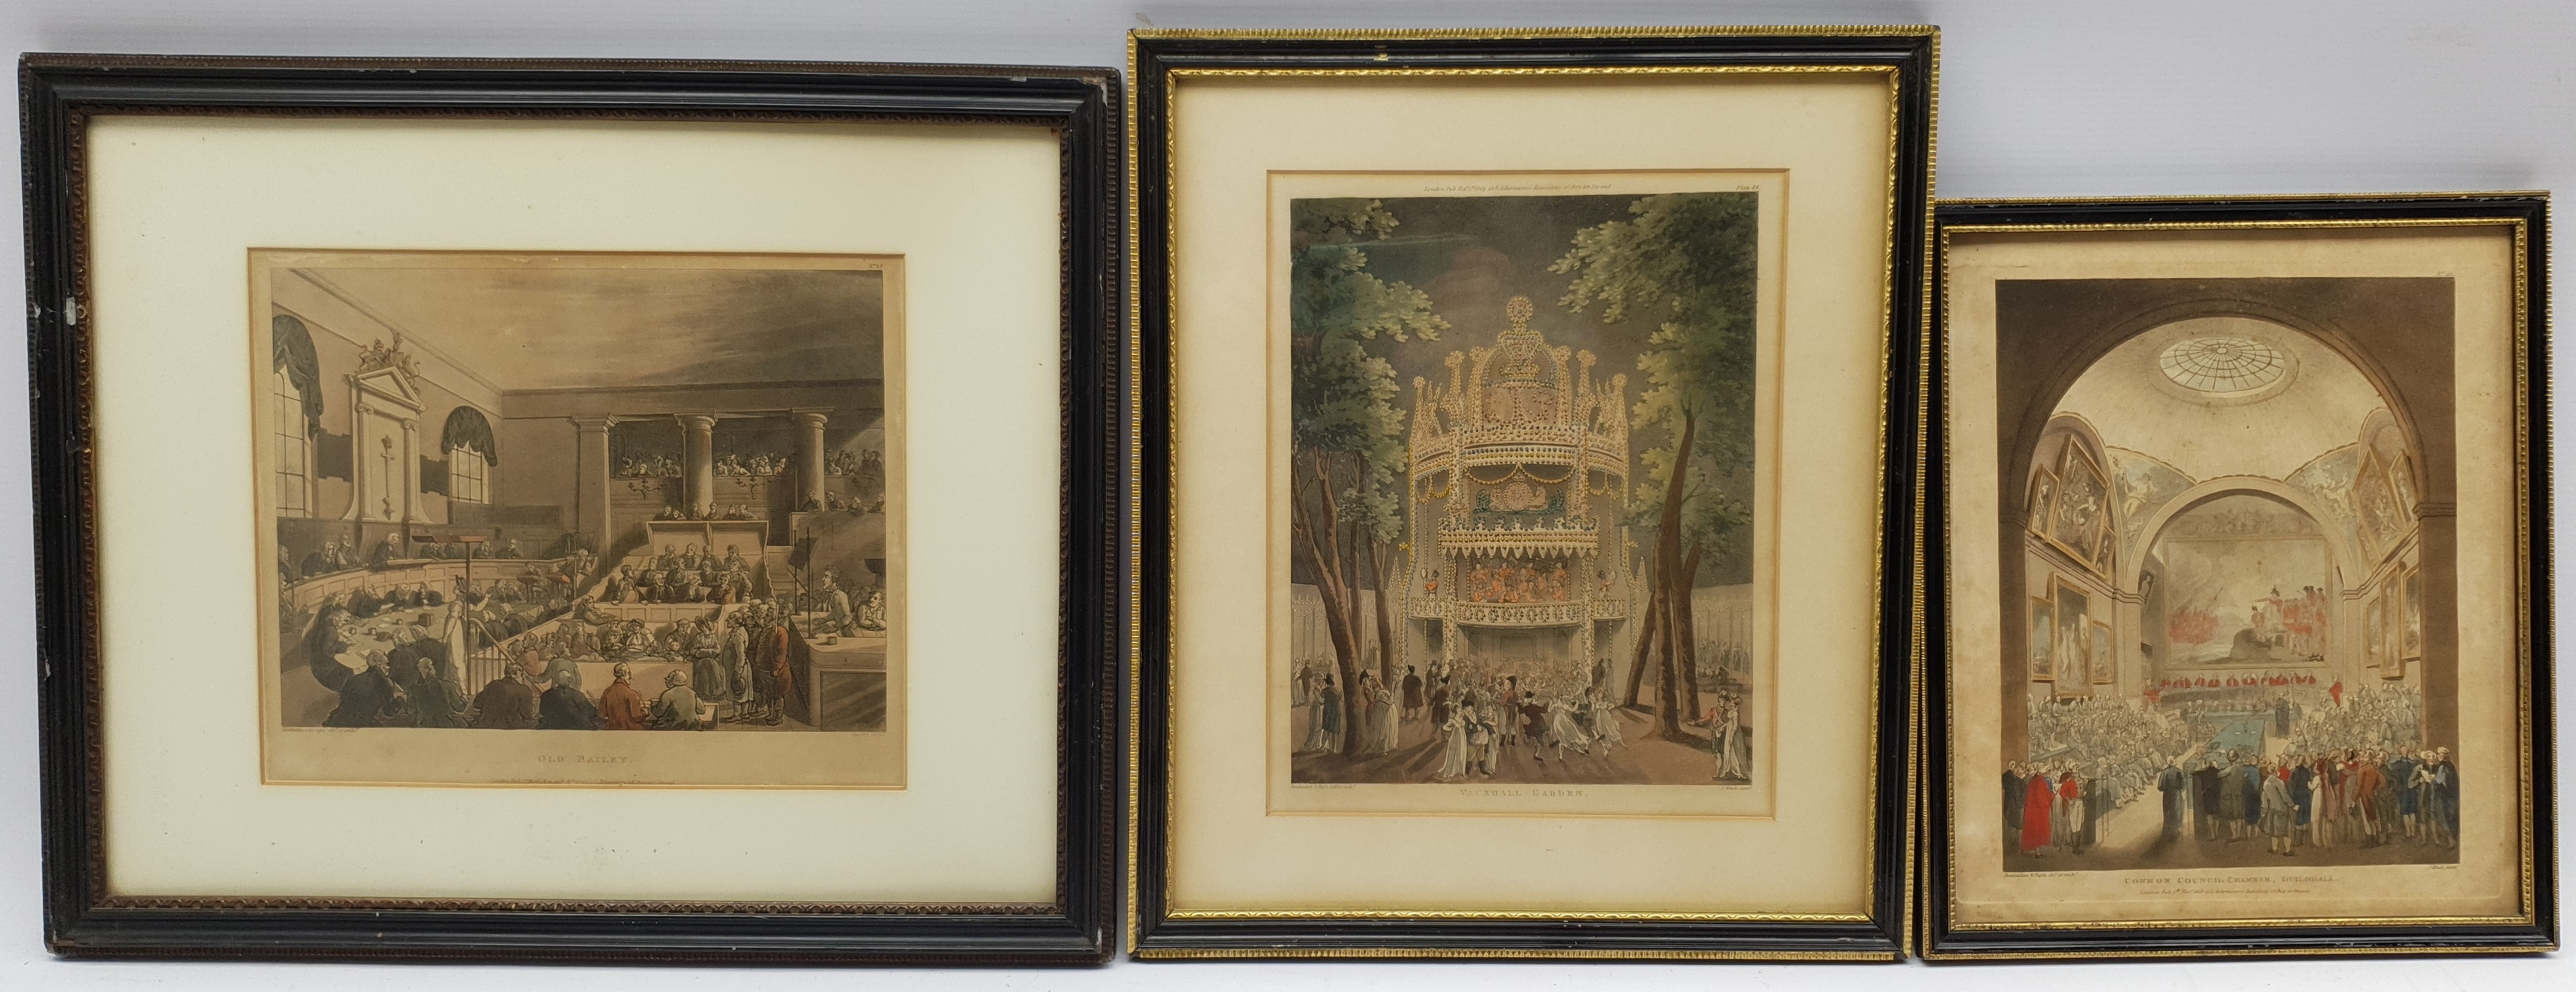 After Thomas Rowlandson (British 1756-1827) and Augustus Charles Pugin (1762-1832): Nine hand-colour - Image 2 of 2